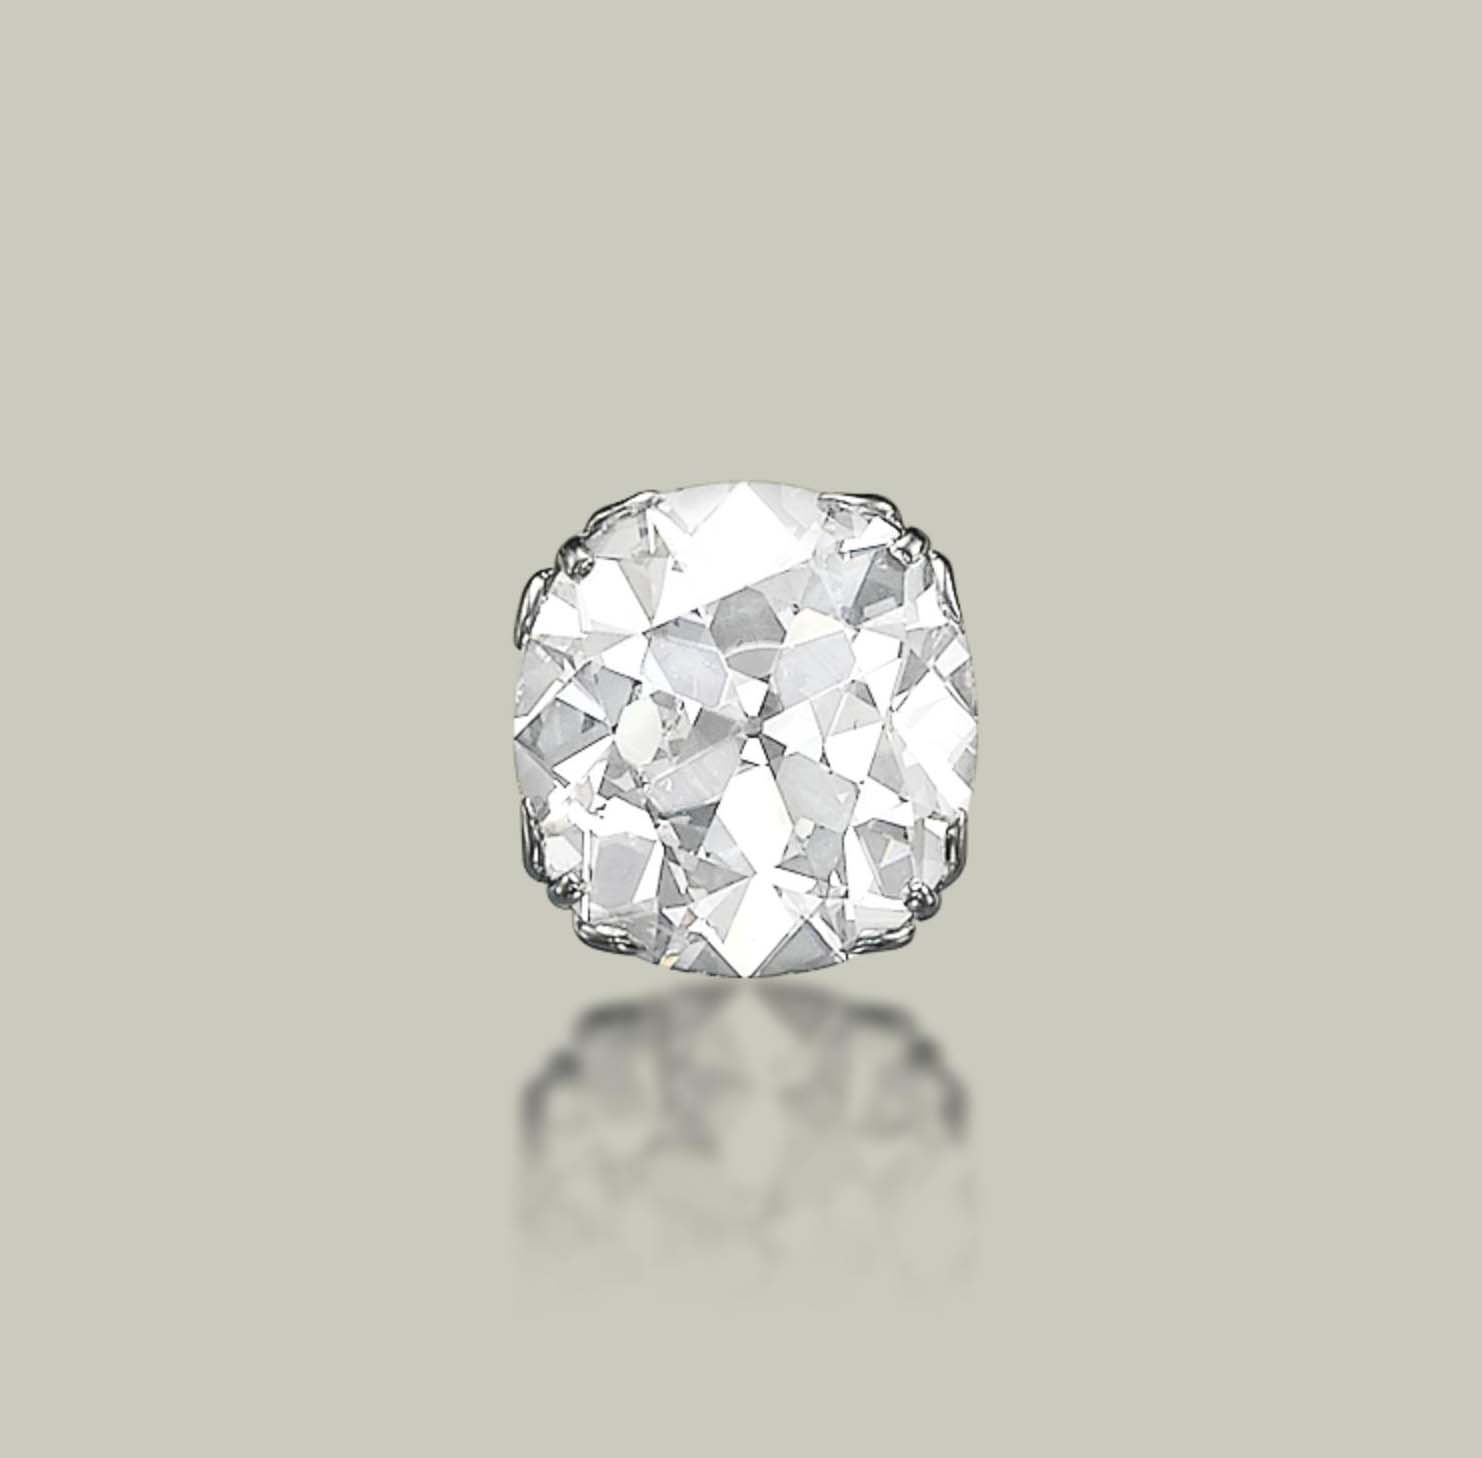 AN EXCEPTIONAL DIAMOND RING, BY CHAUMET